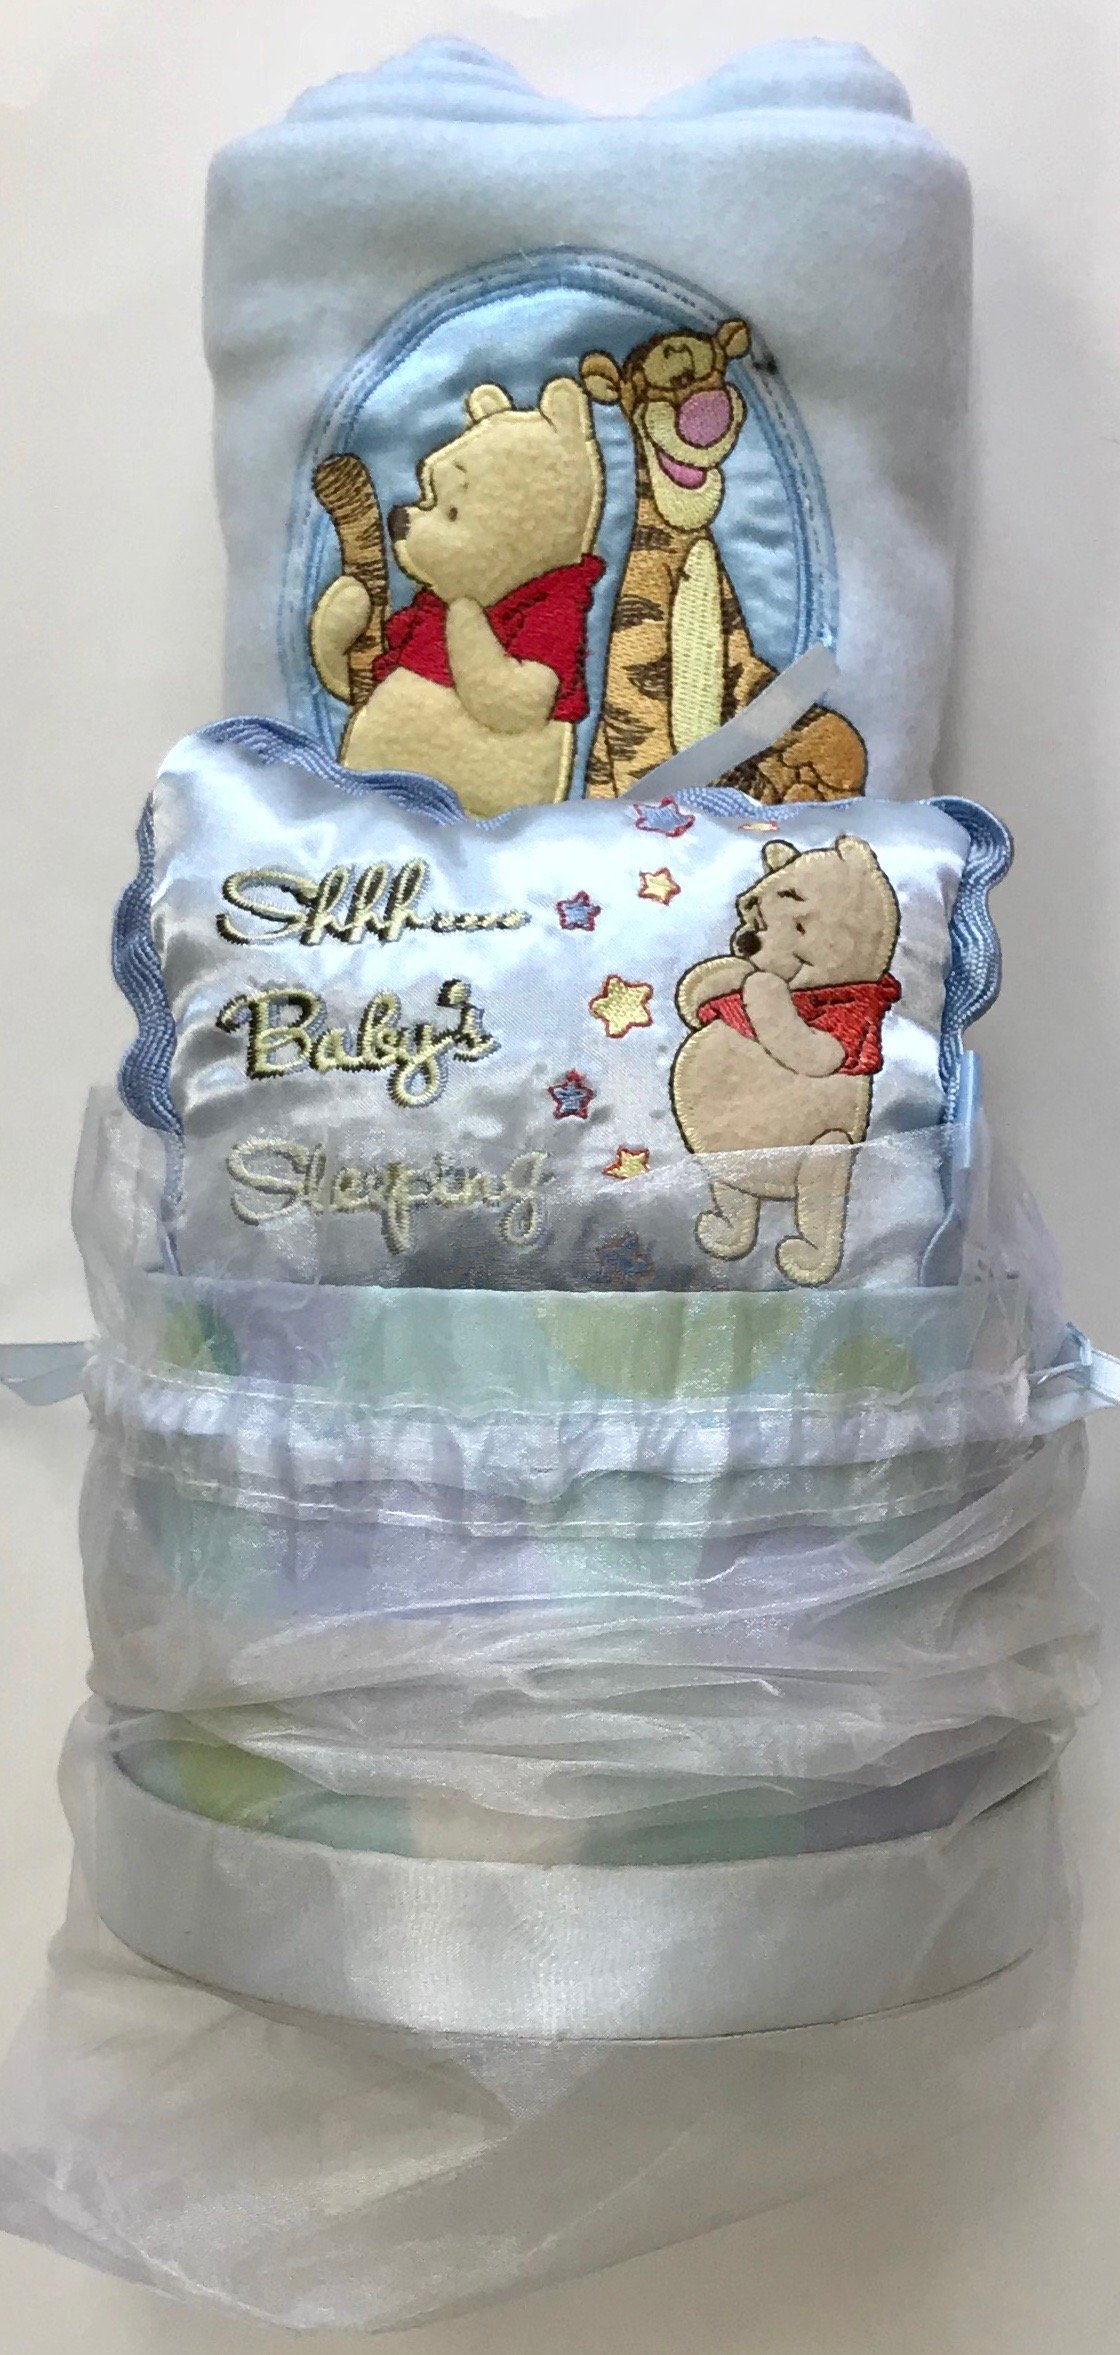 963e1dc7e360 Get Quotations · Disney Winnie The Pooh Baby Gift Set Including Embroidered  Blanket with Small Satin Embroidered Pillow nicely